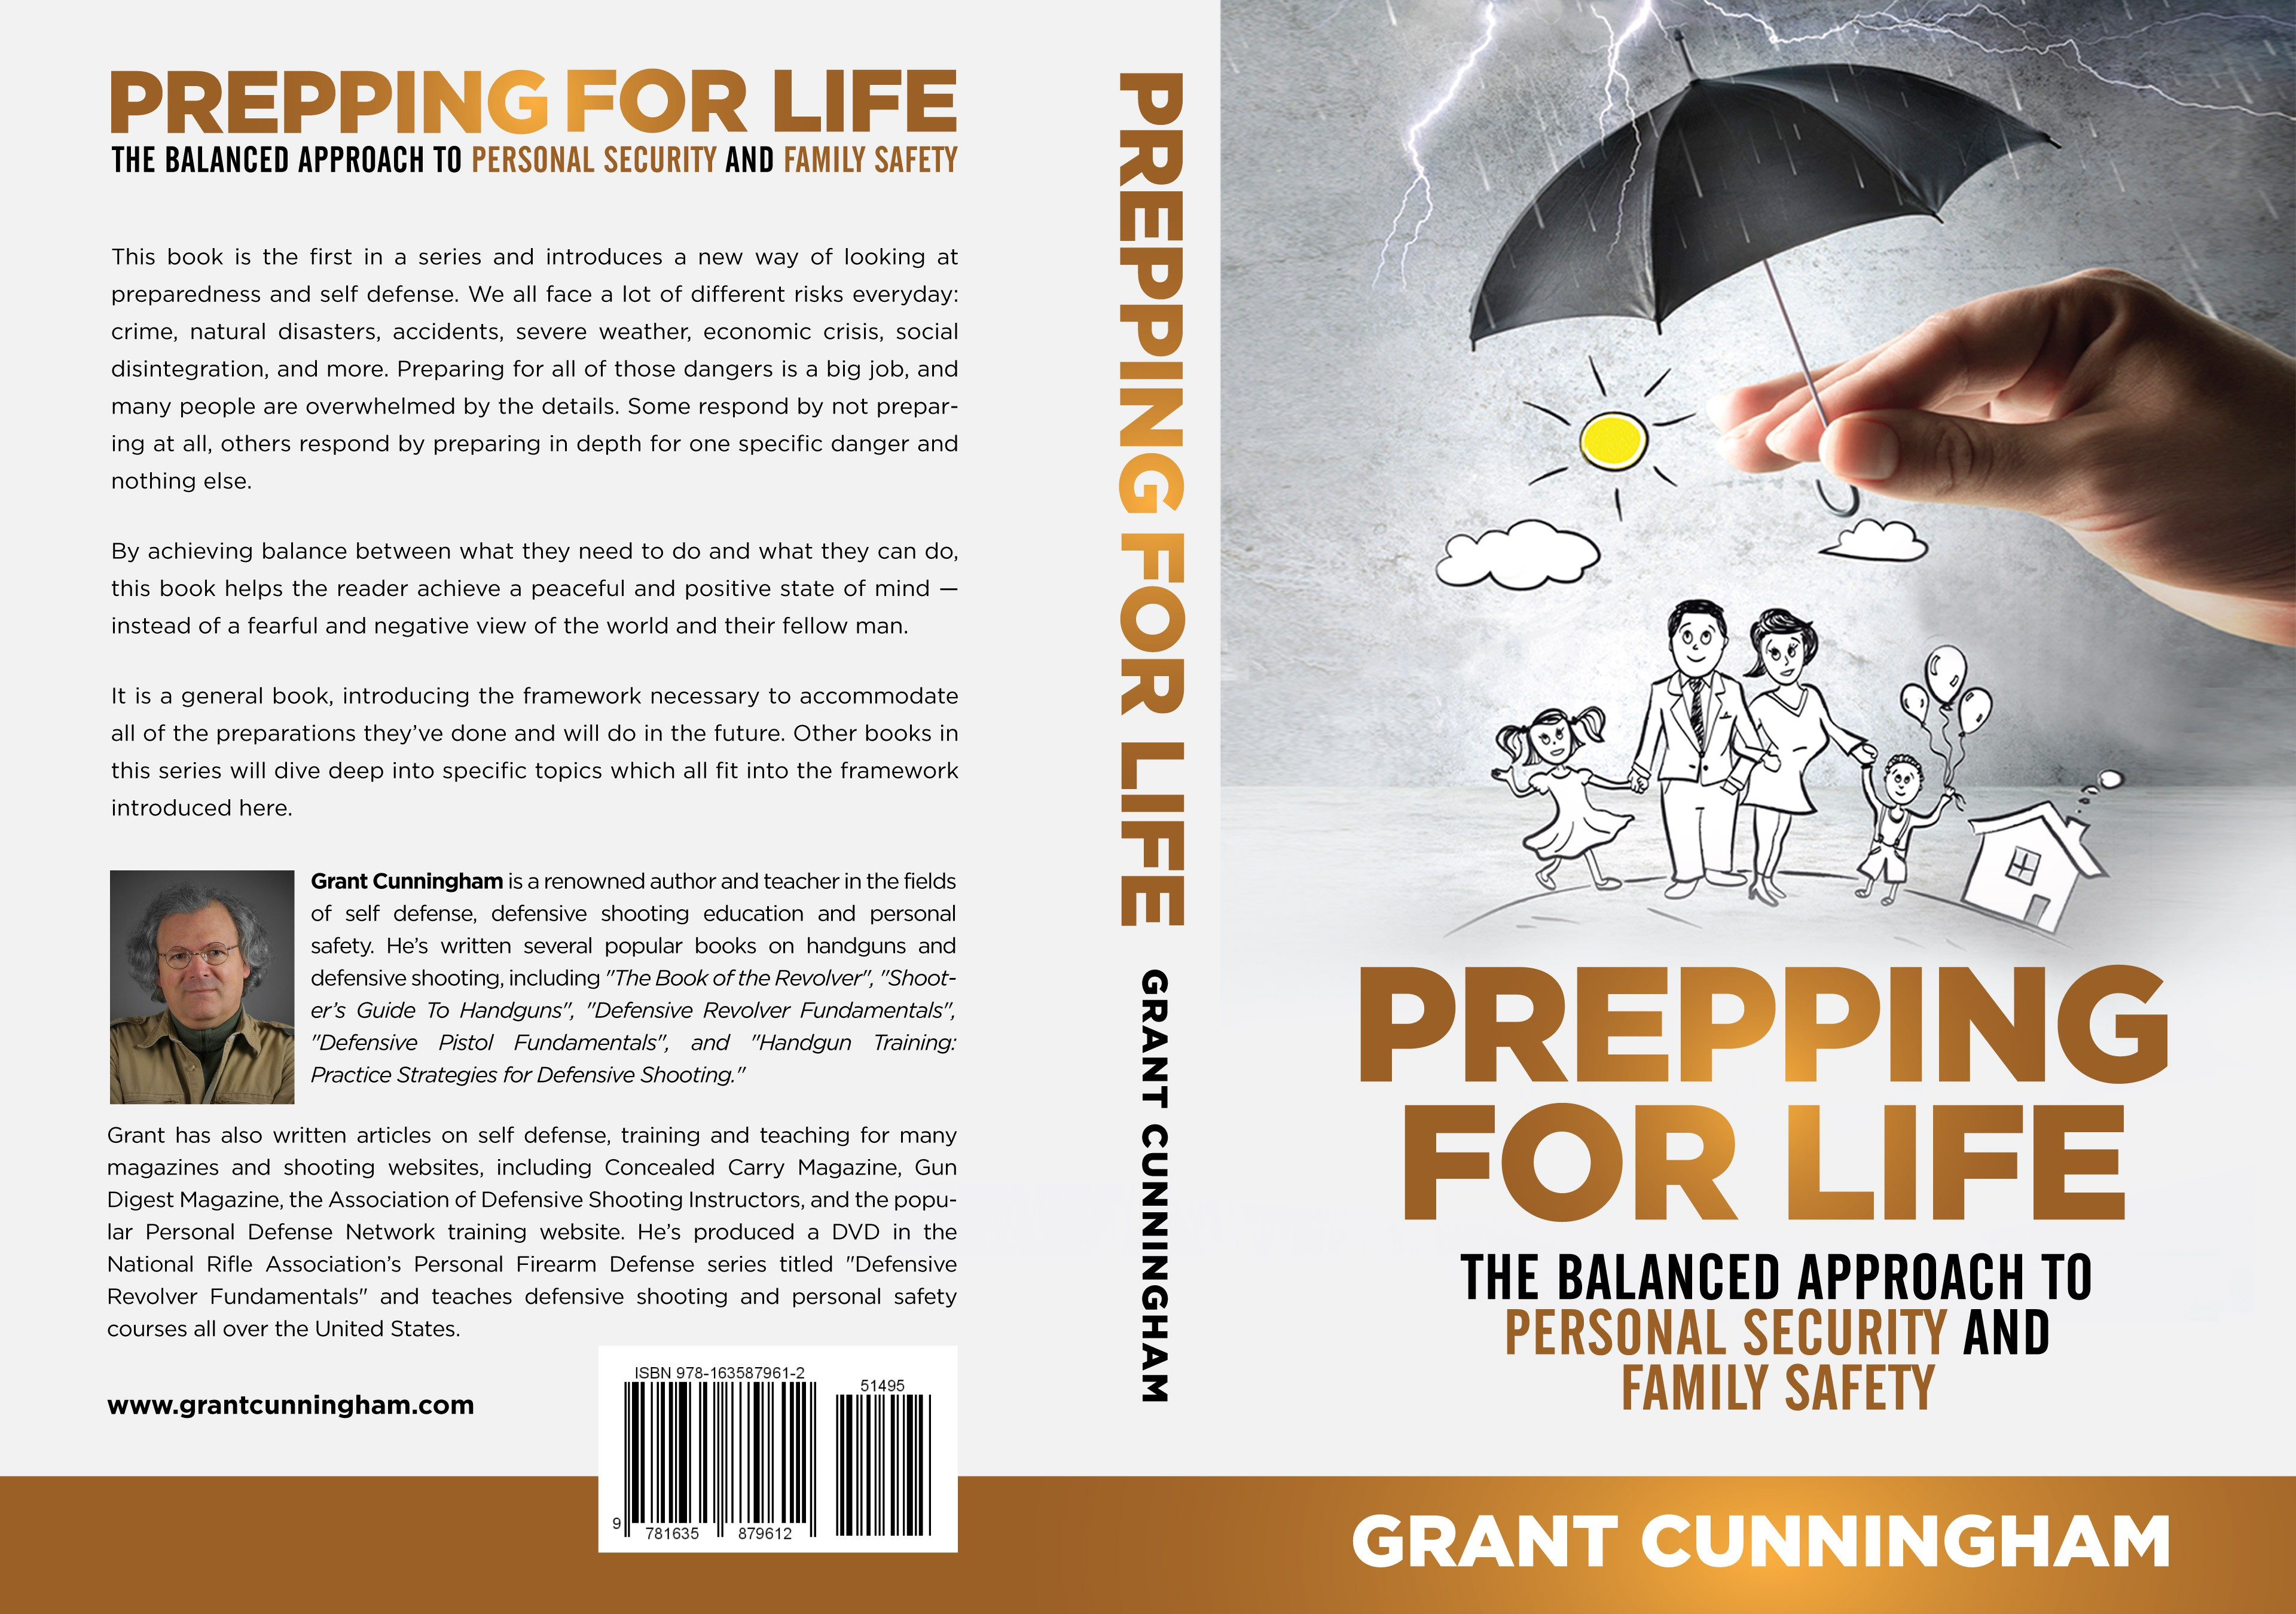 Design a book cover about achieving personal peace by being prepared!